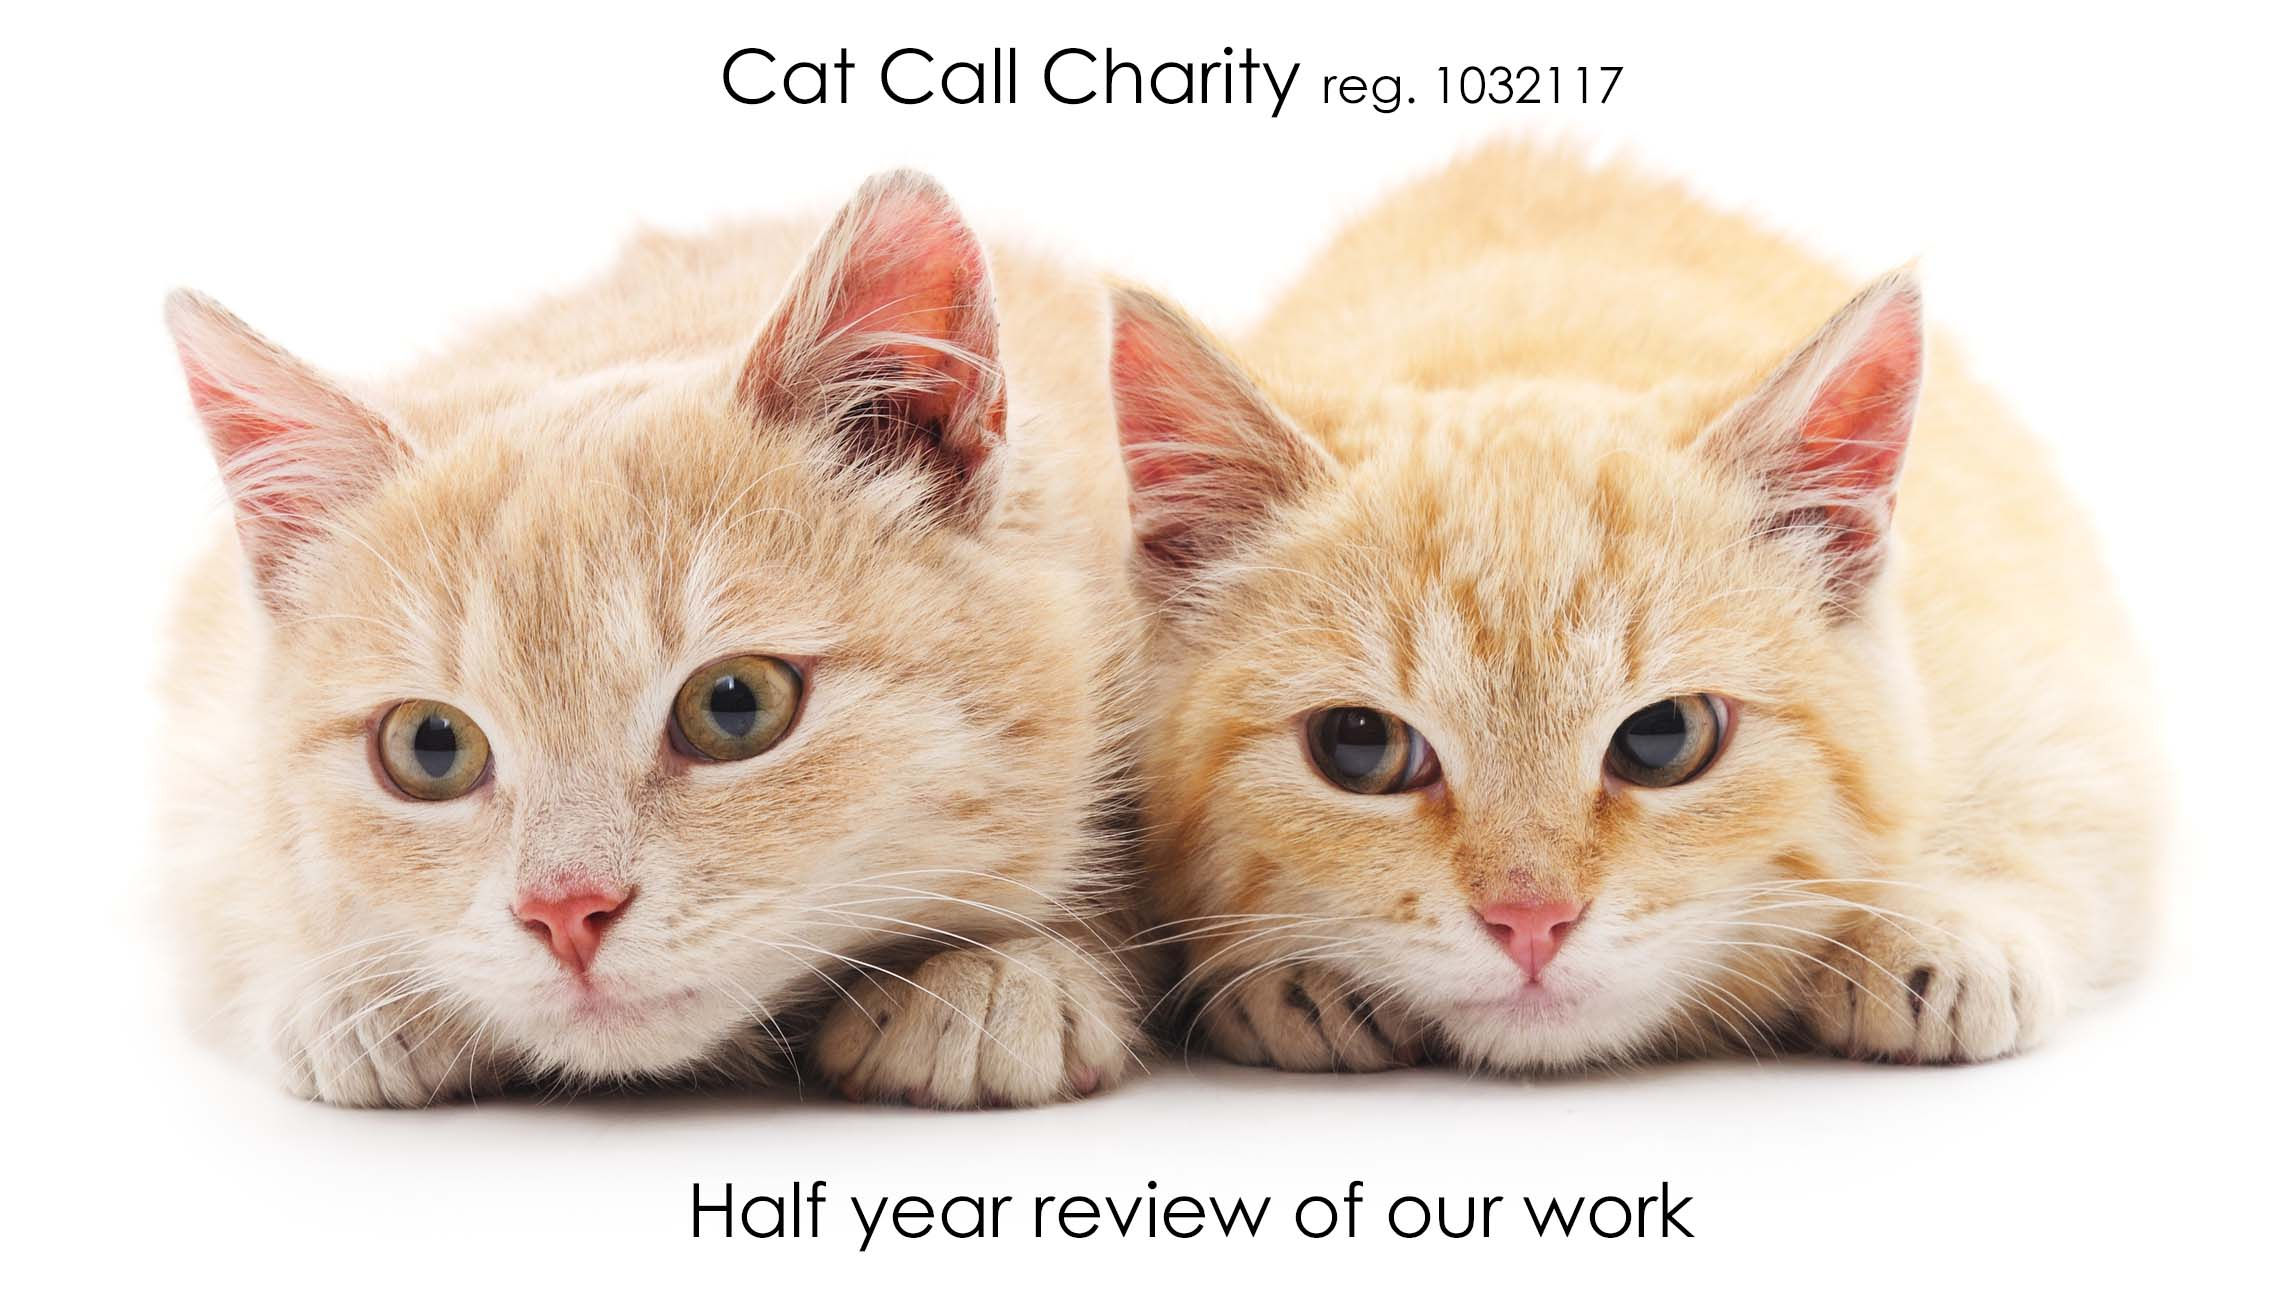 Cat Call Charity half year review 2018